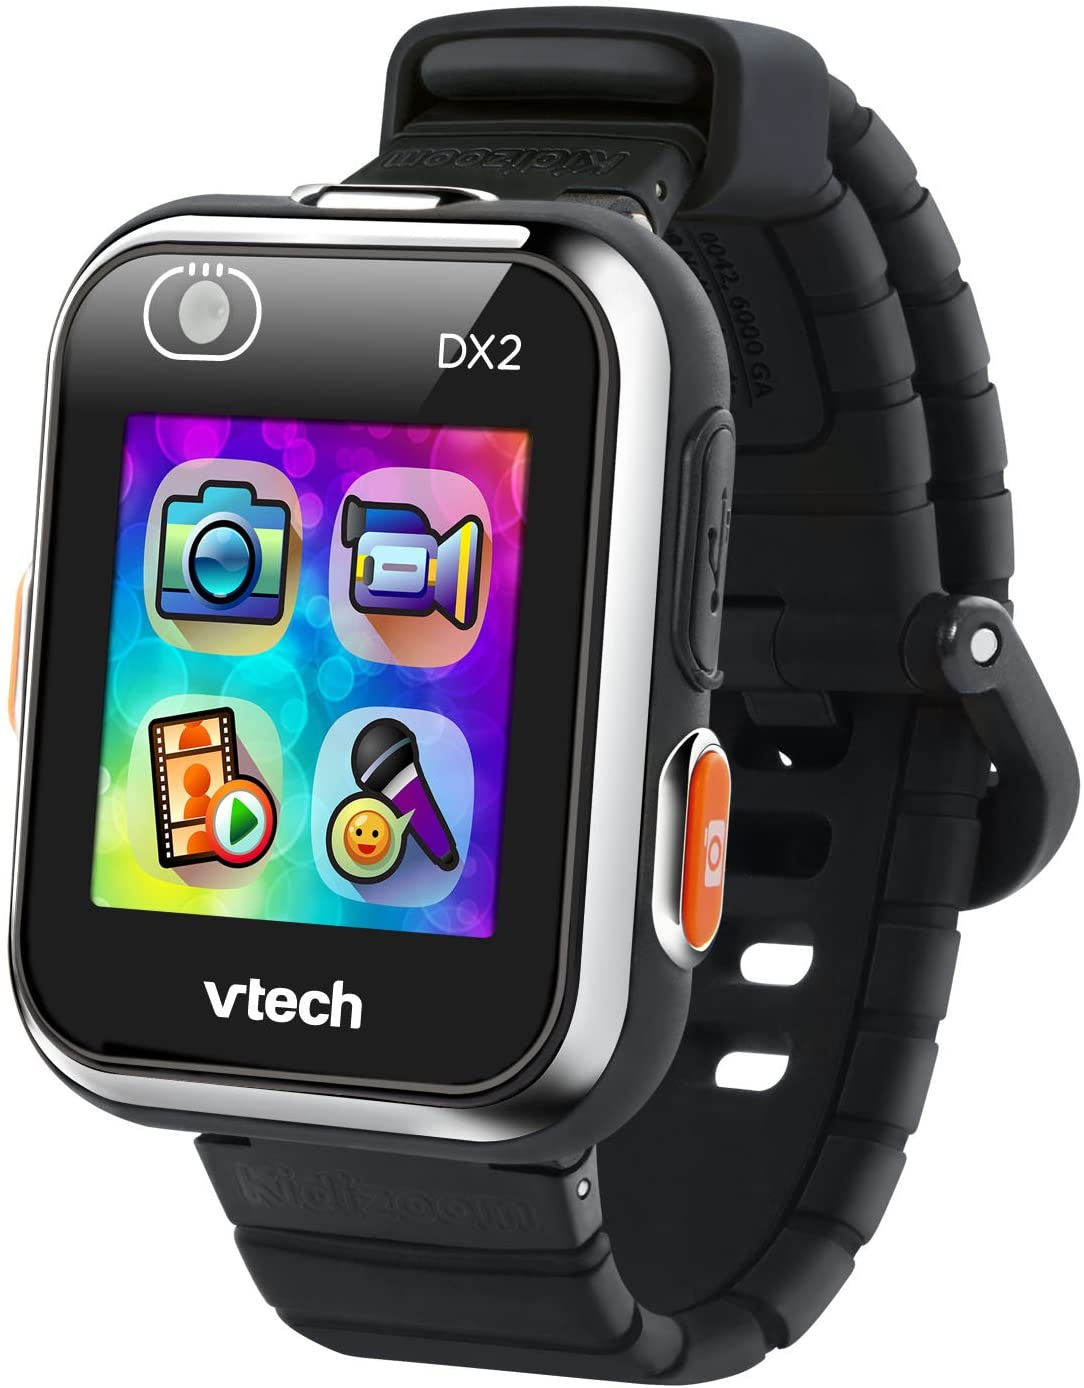 vtech kidizoom smartwatch dx2 for kids in black color, isolated on white background